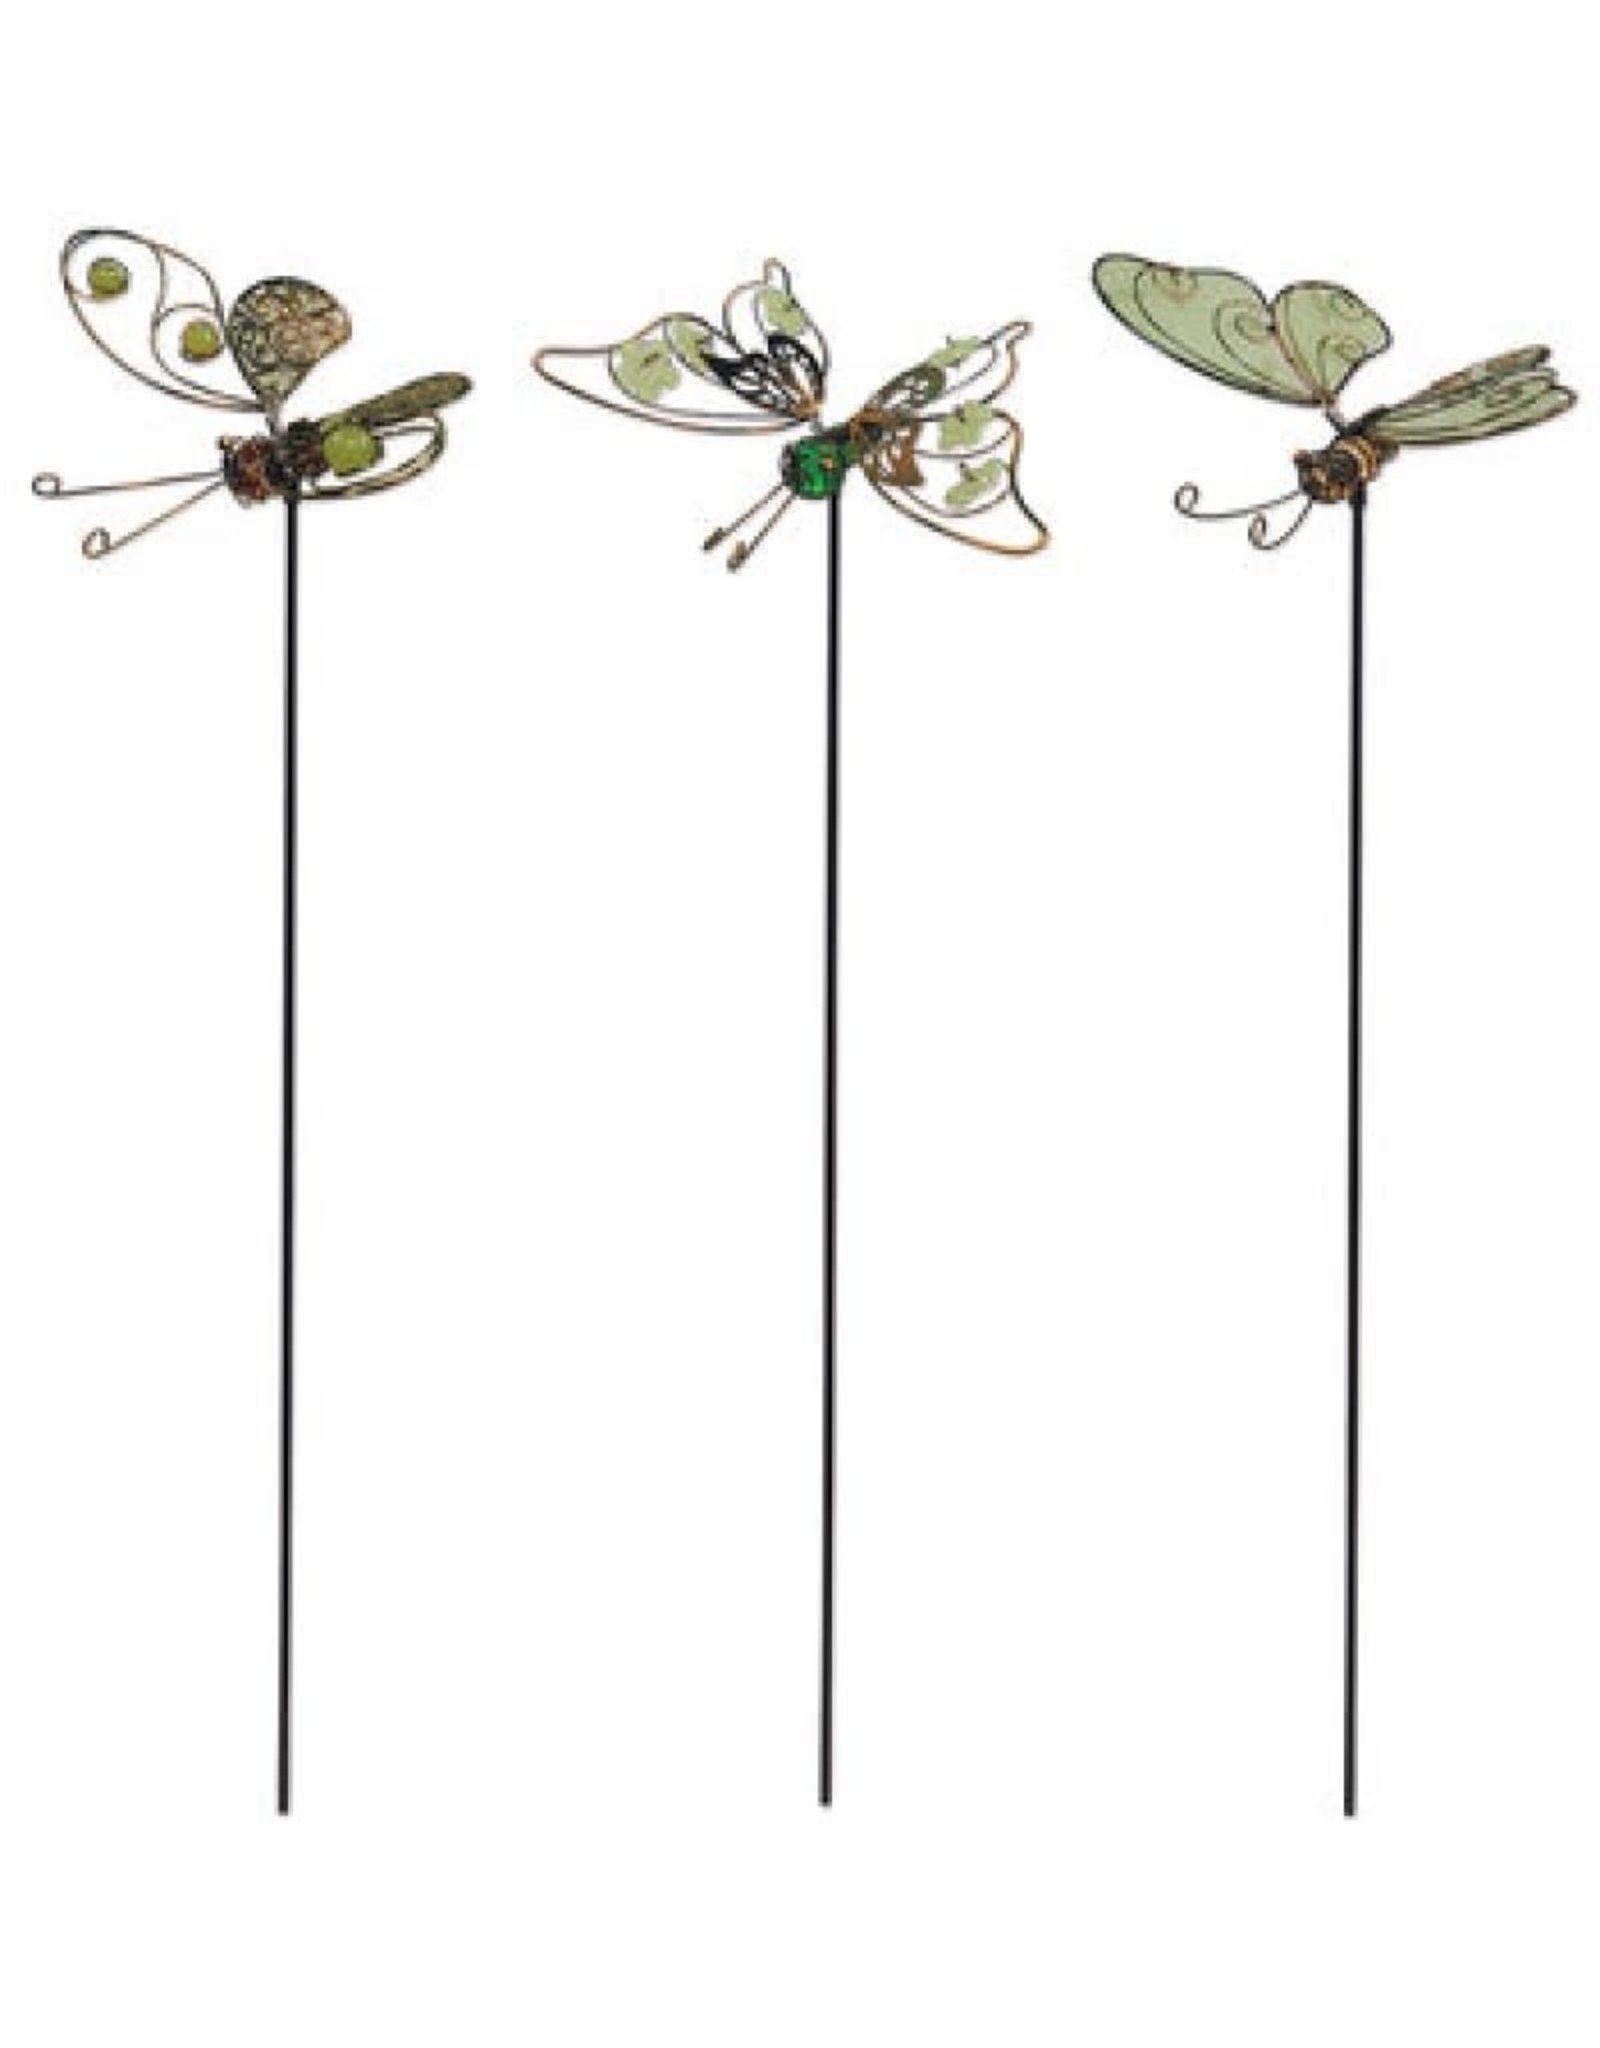 Glow in the Dark Butterfly Stakes - Set of 3